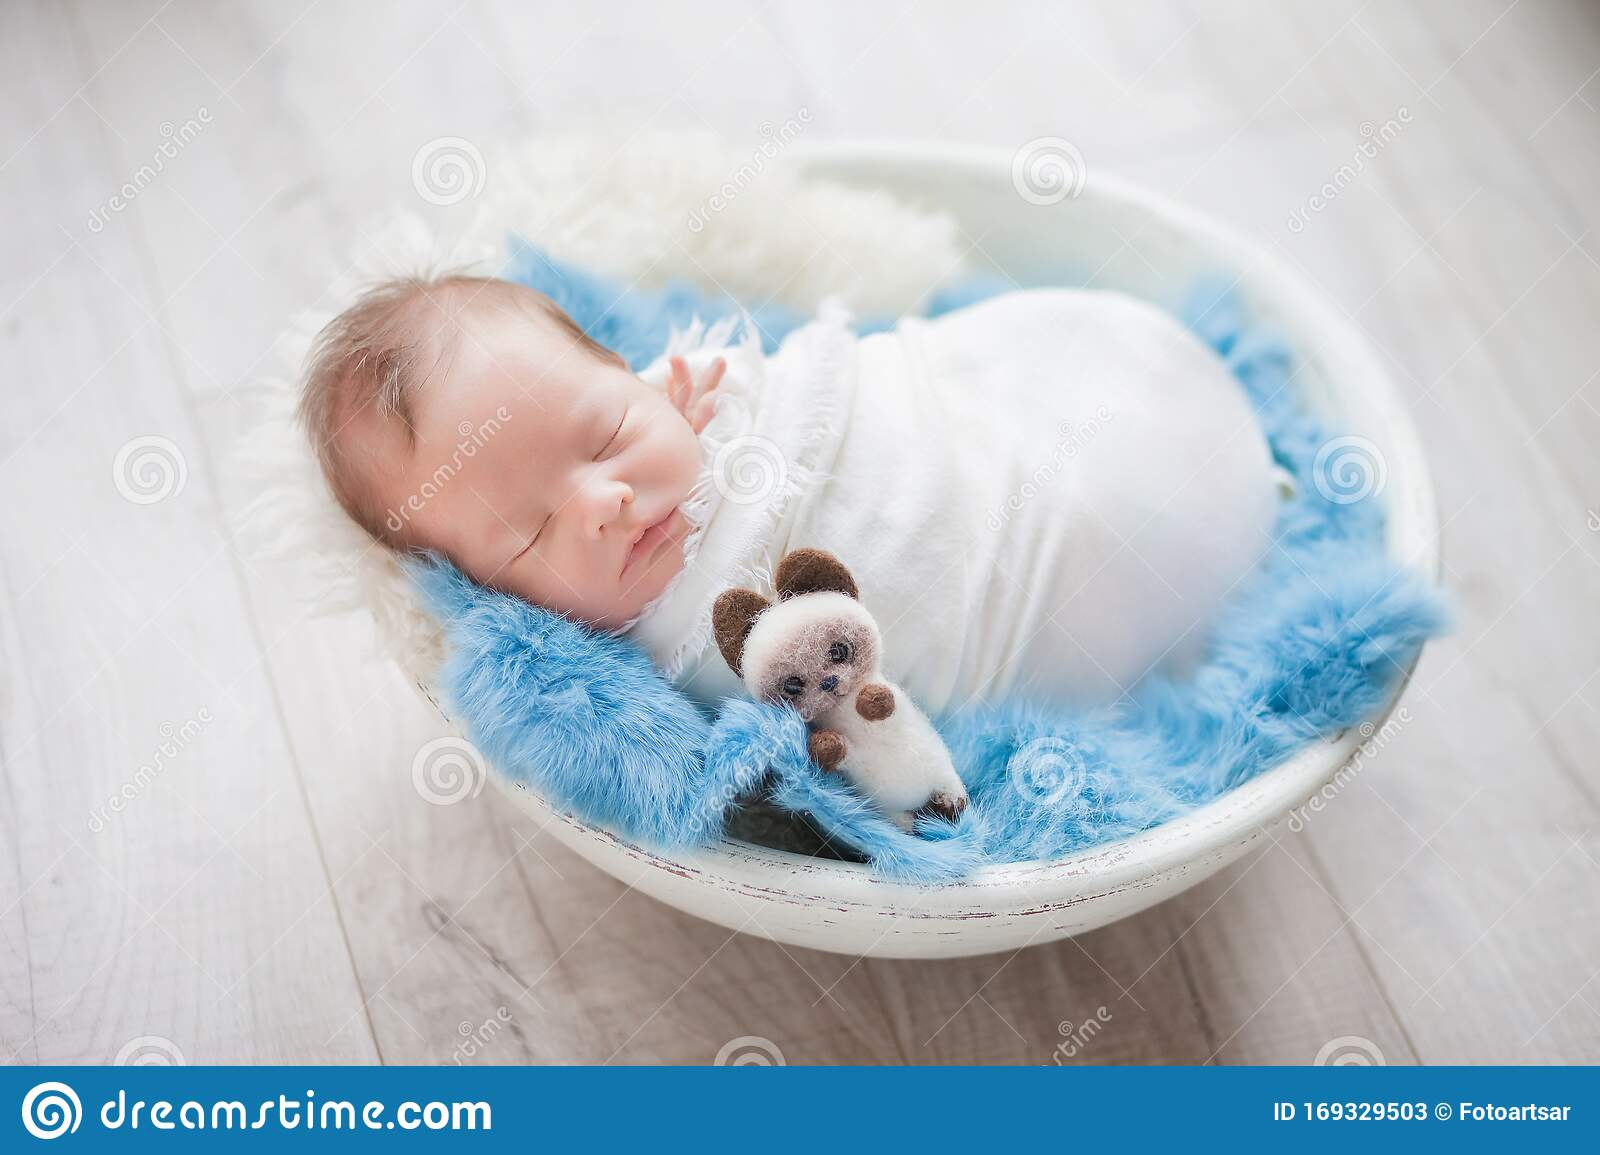 Picture of: Newborn Baby Boy In A Cocoon In A White Bowl On A Blue Rug Stock Image Image Of Caucasian Little 169329503